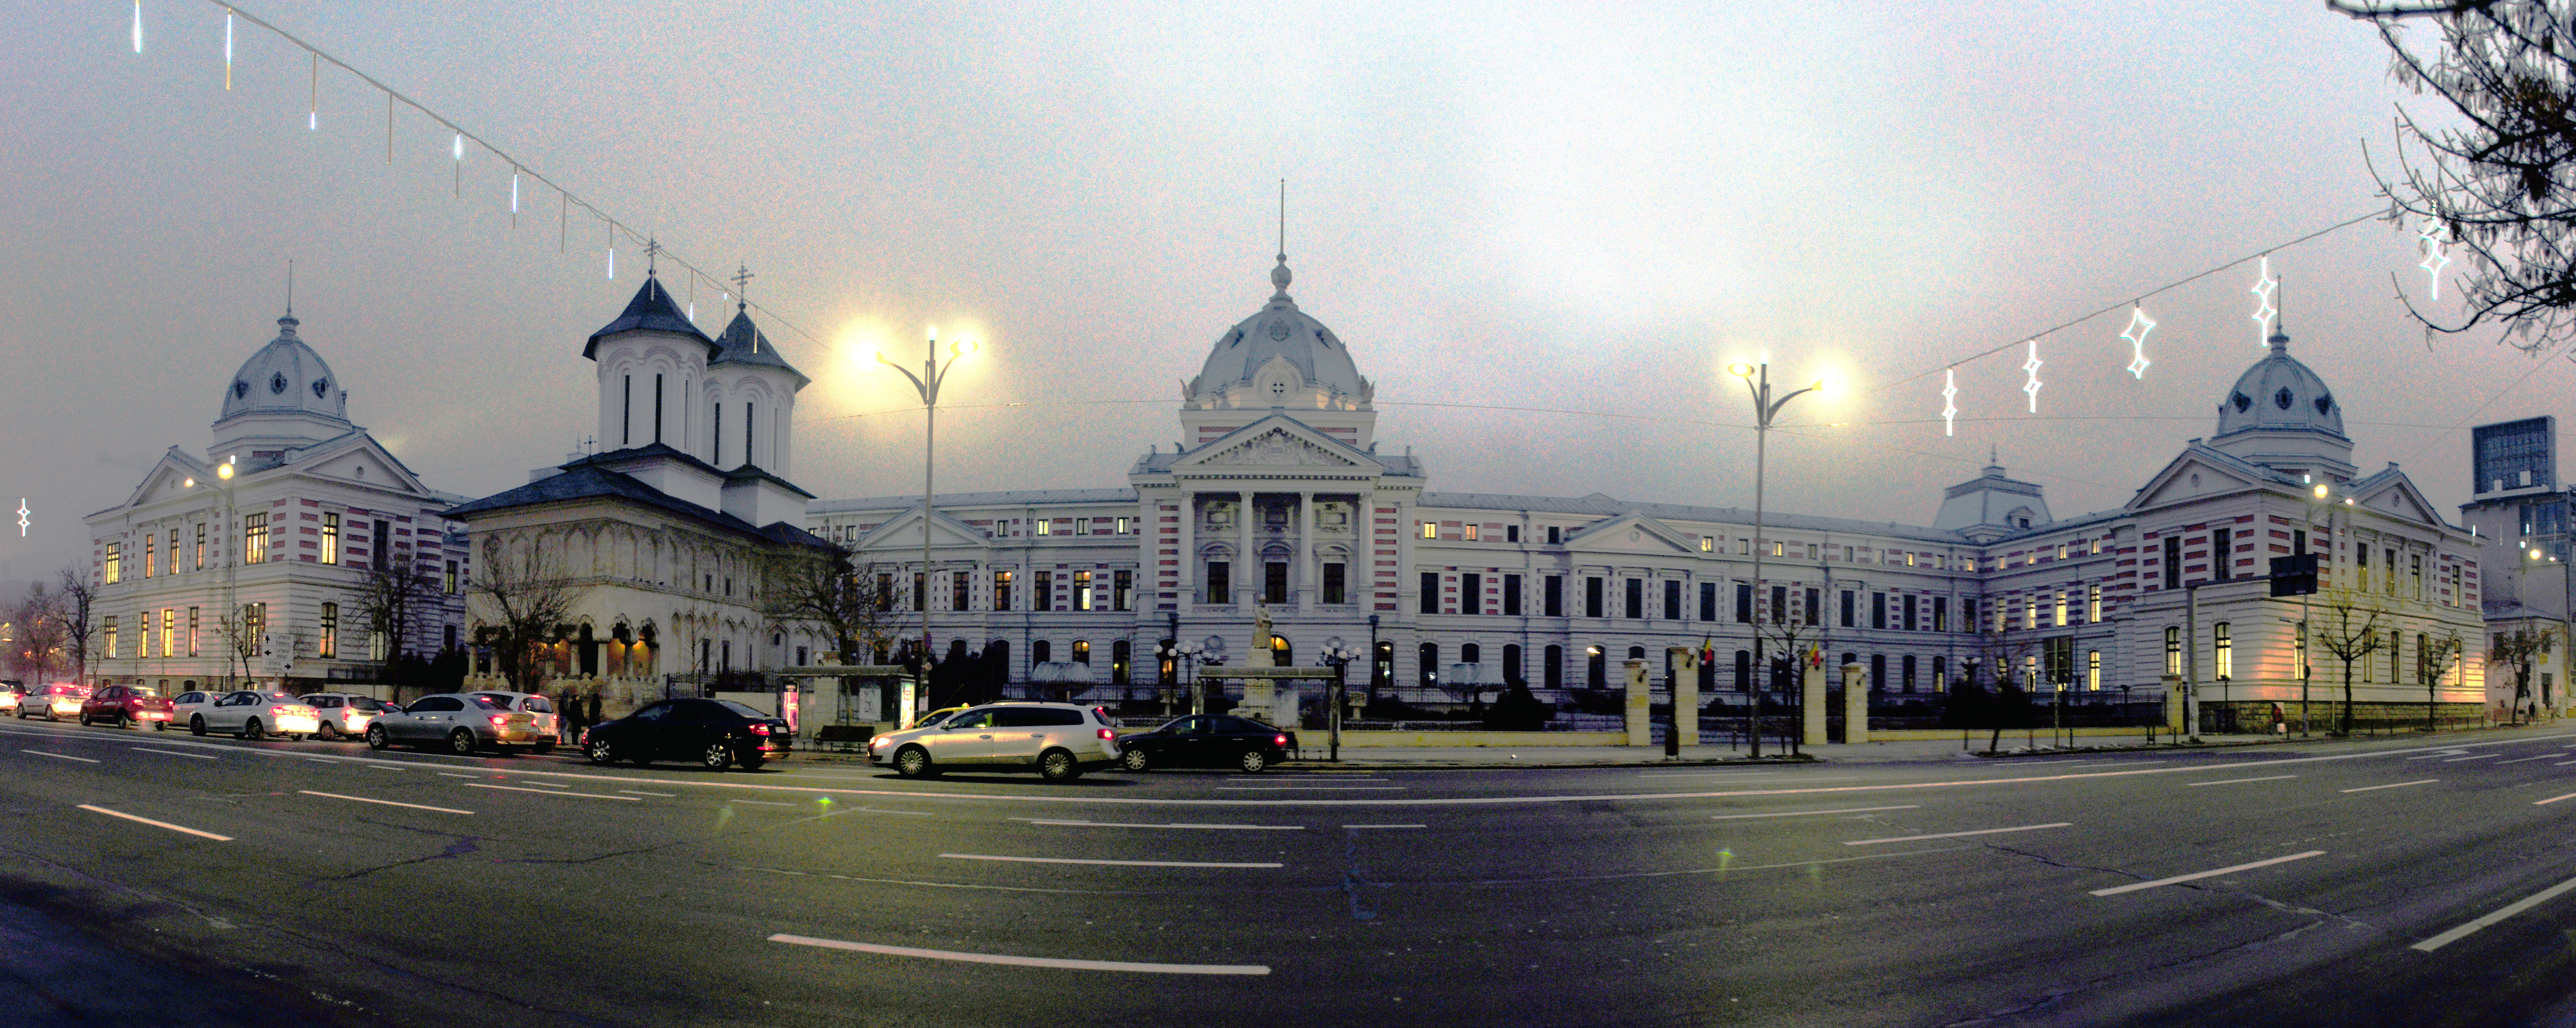 Bucharest_-_Spitalul_Clinic_Coltea_-_pano_01-equalized